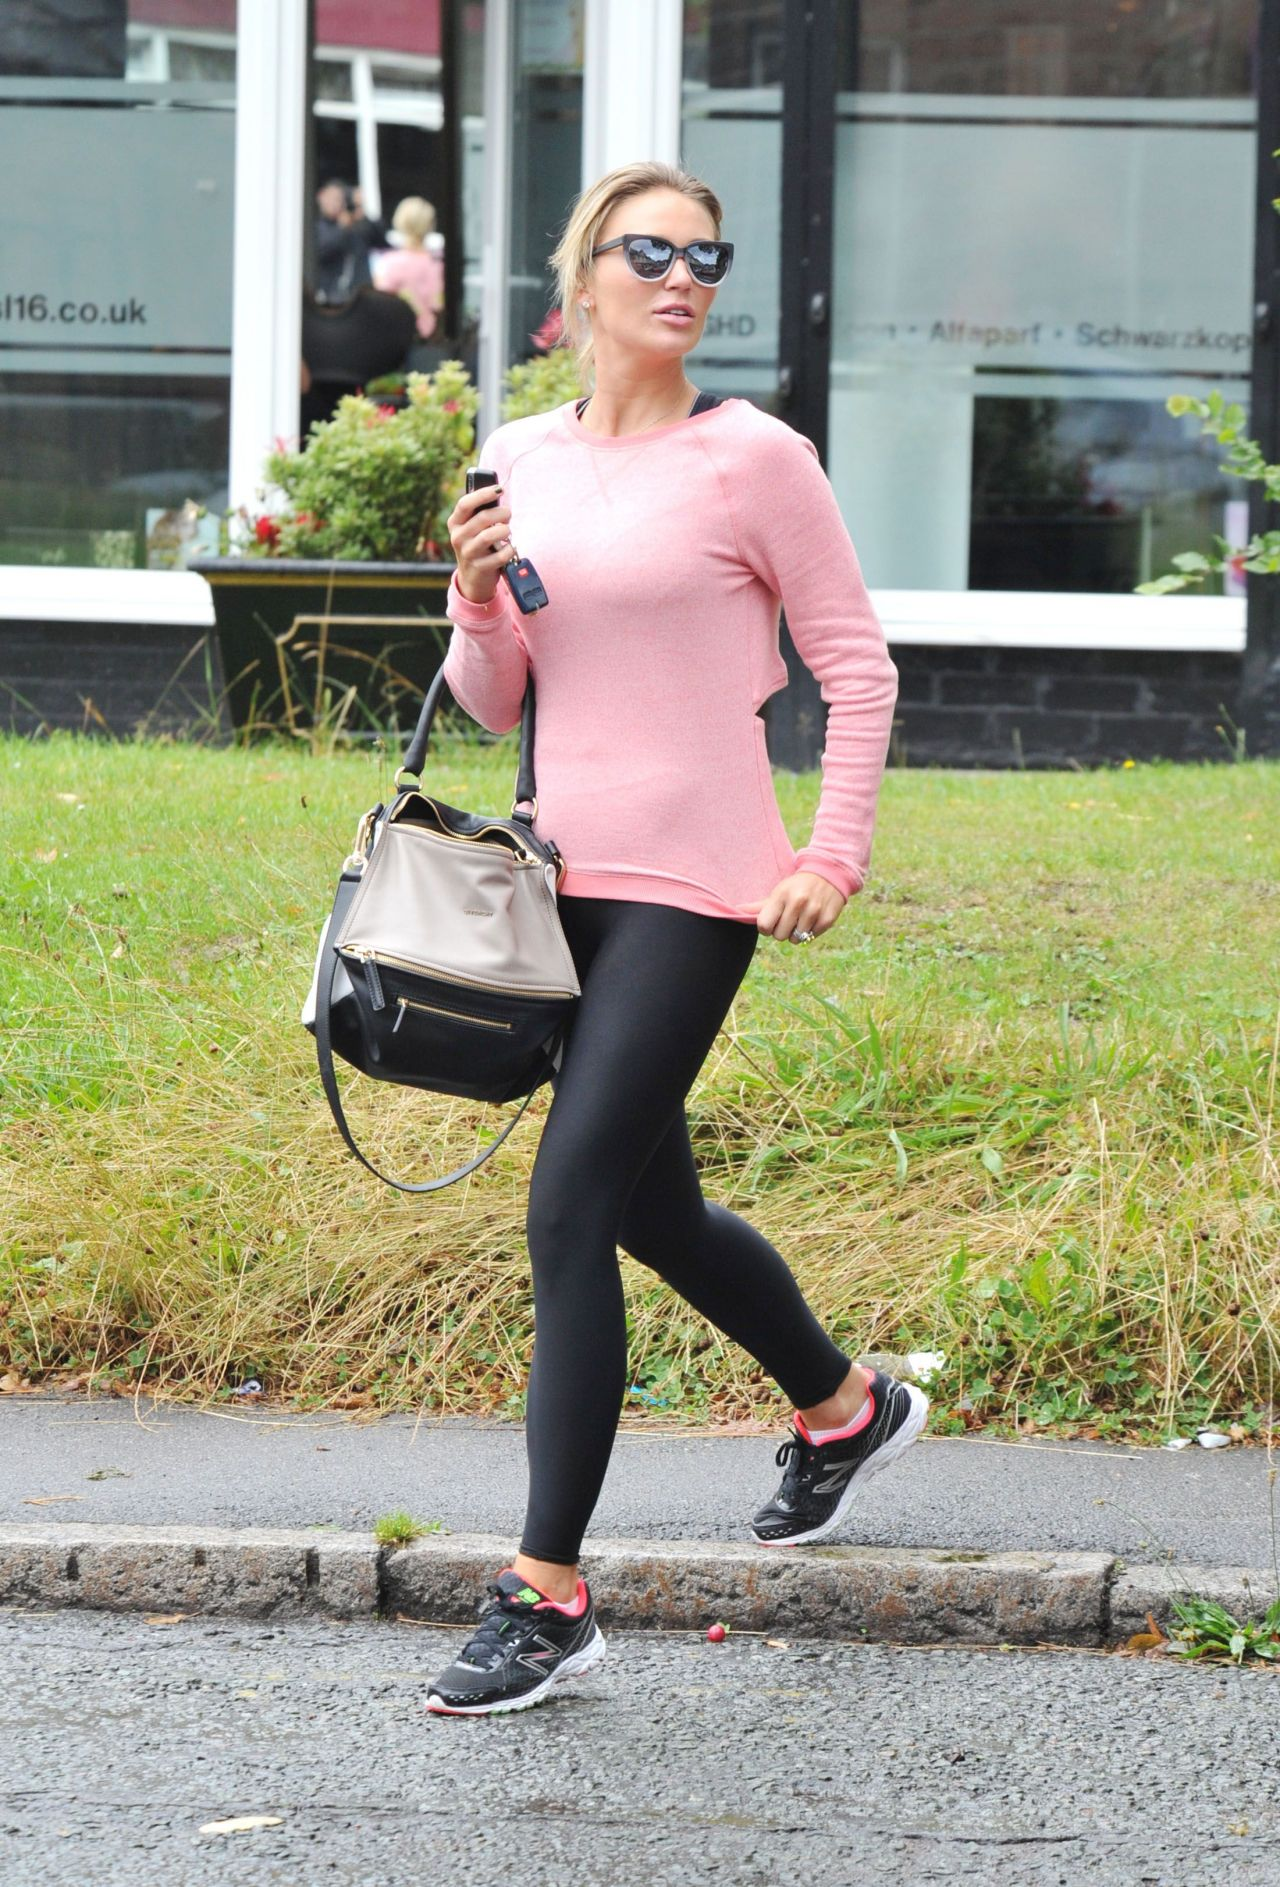 Alex Gerrard in Tights Leaving the Gym in London - August 2014